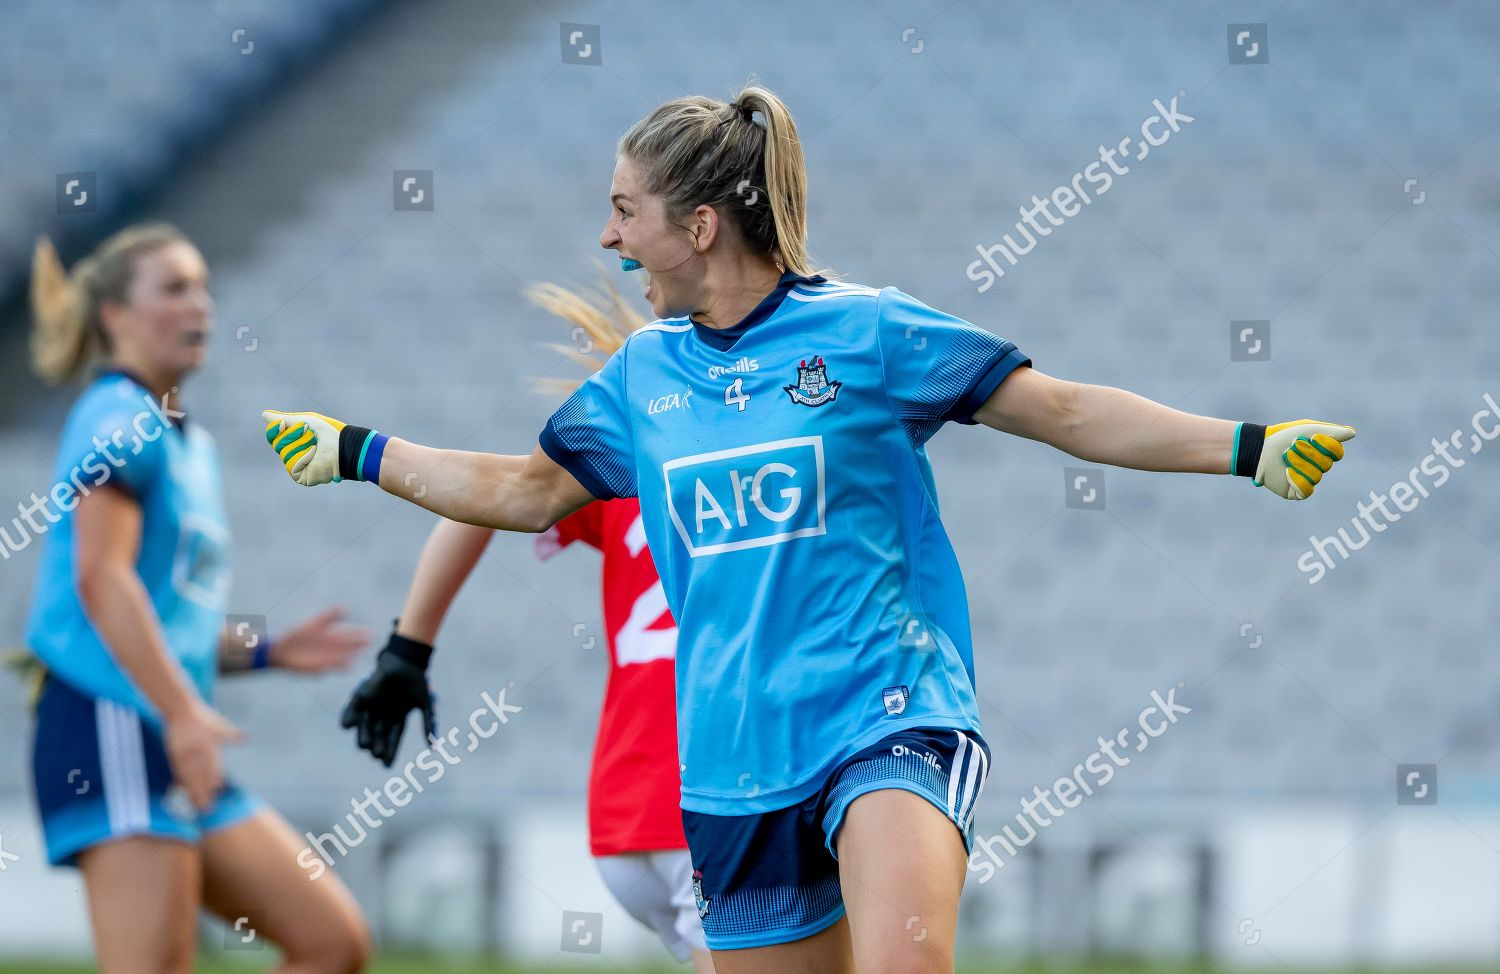 2582019 Cork Vs Dublin Dublins Martha Byrne Editorial Stock Photo Stock Image Shutterstock